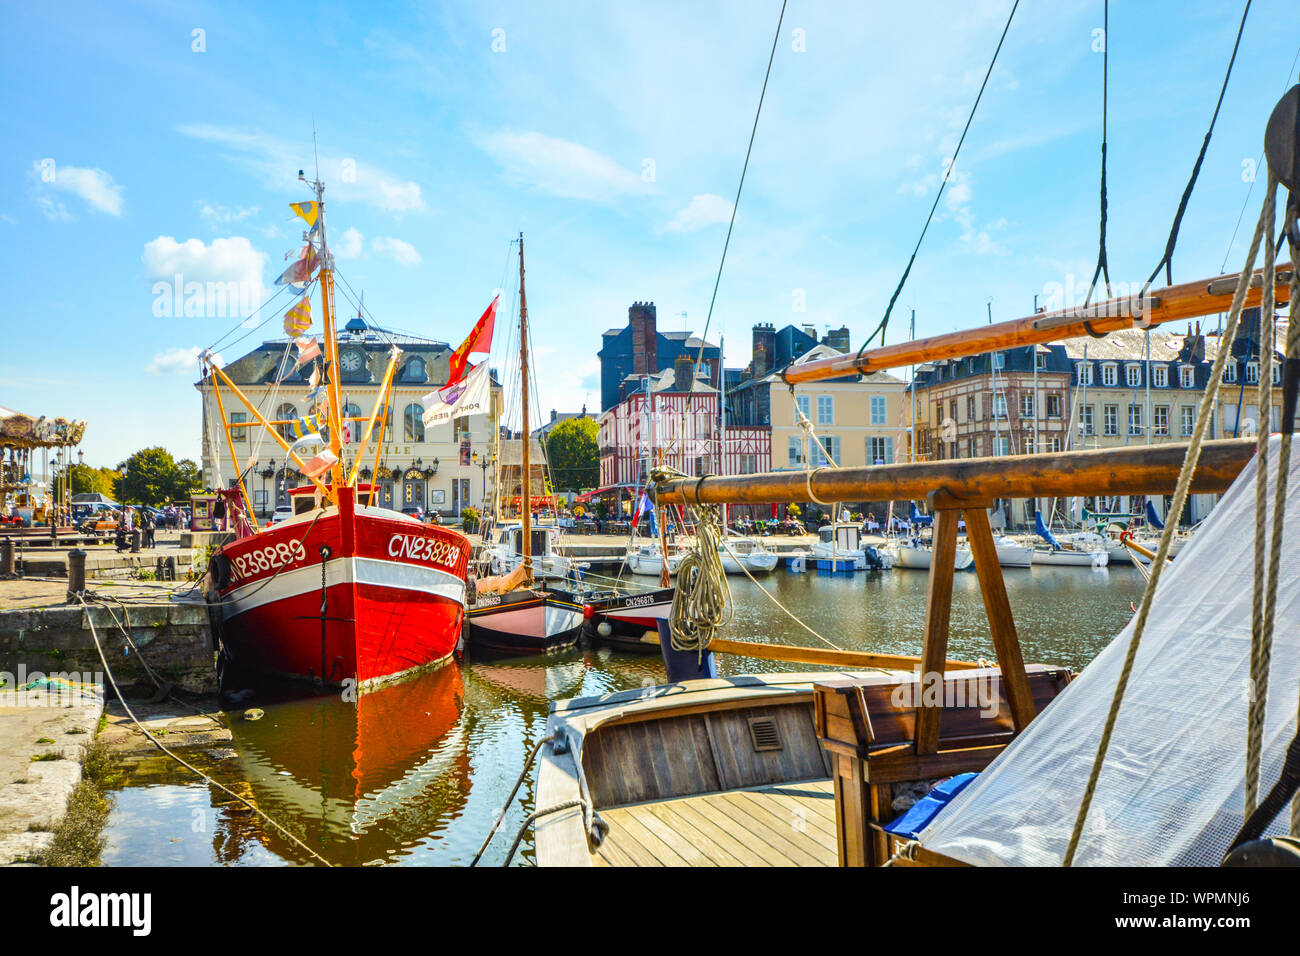 A red fishing boat is moored in the Old Pier at the historic coastal fishing village of Honfleur, France, at the English Channel on the Normandy Coast Stock Photo